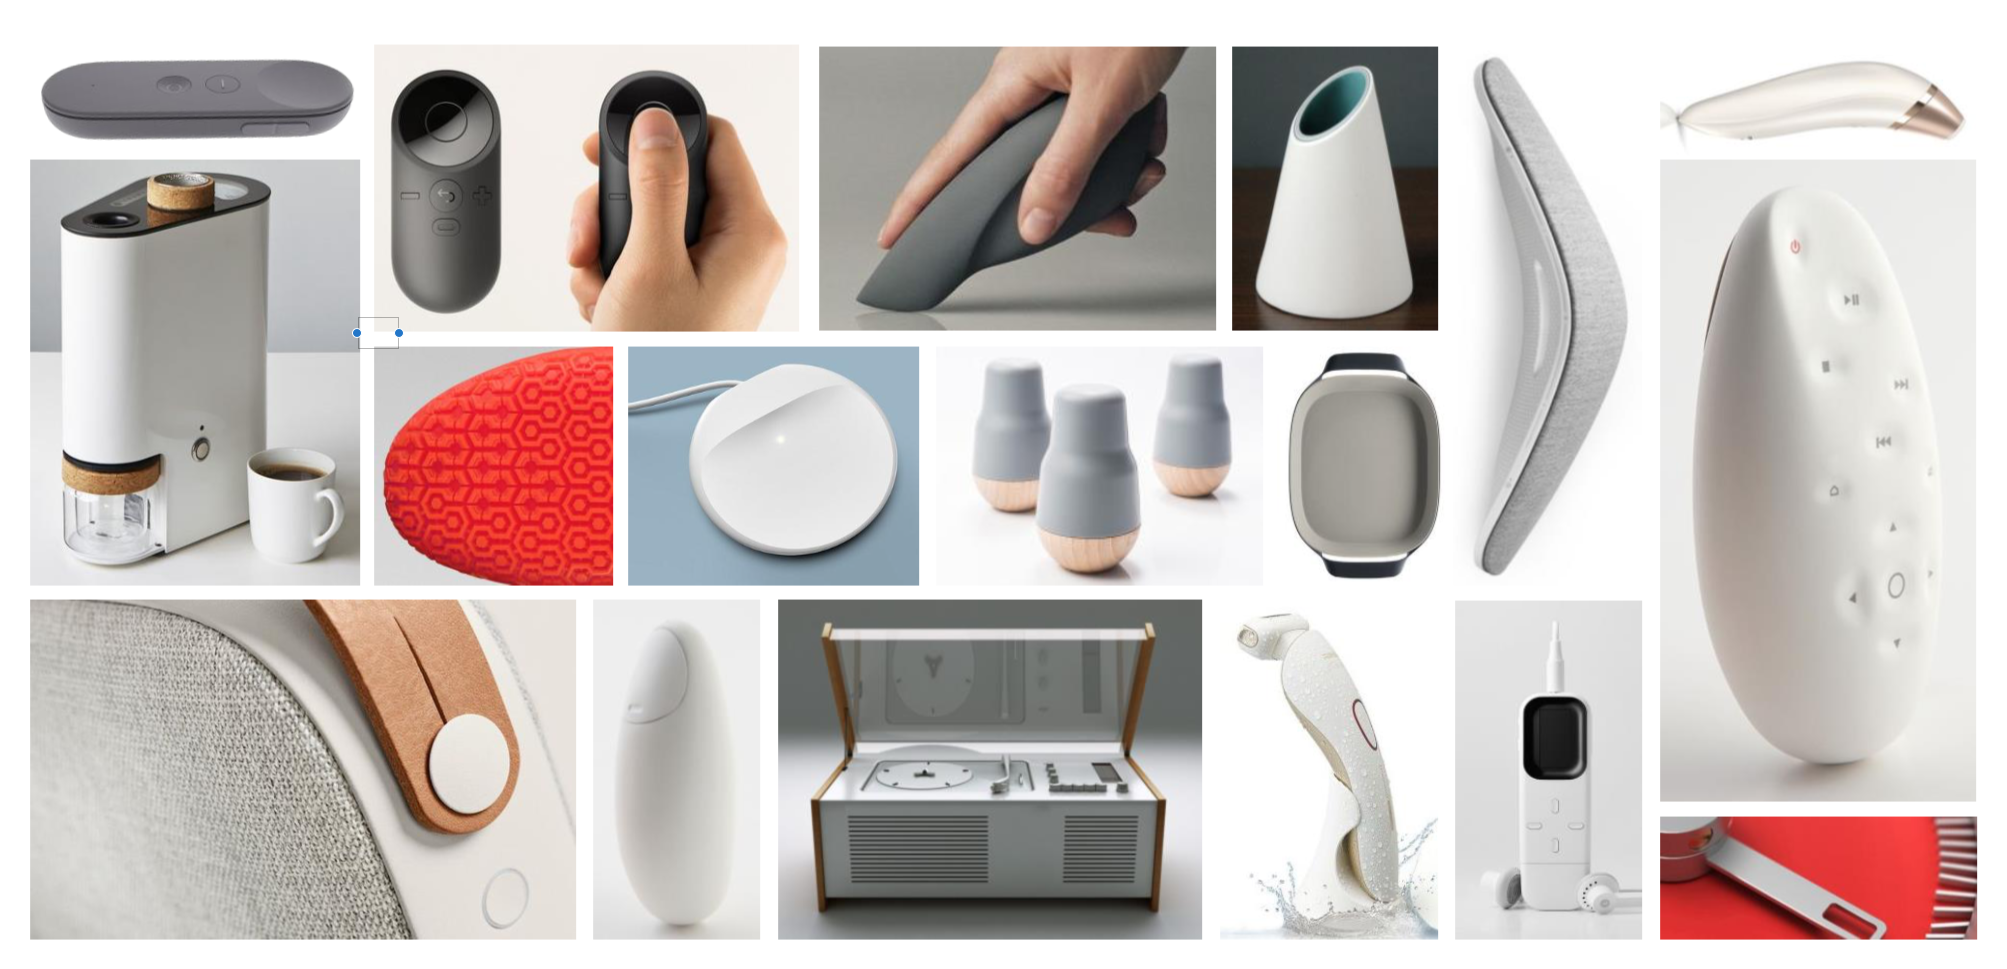 Form and user interaction references